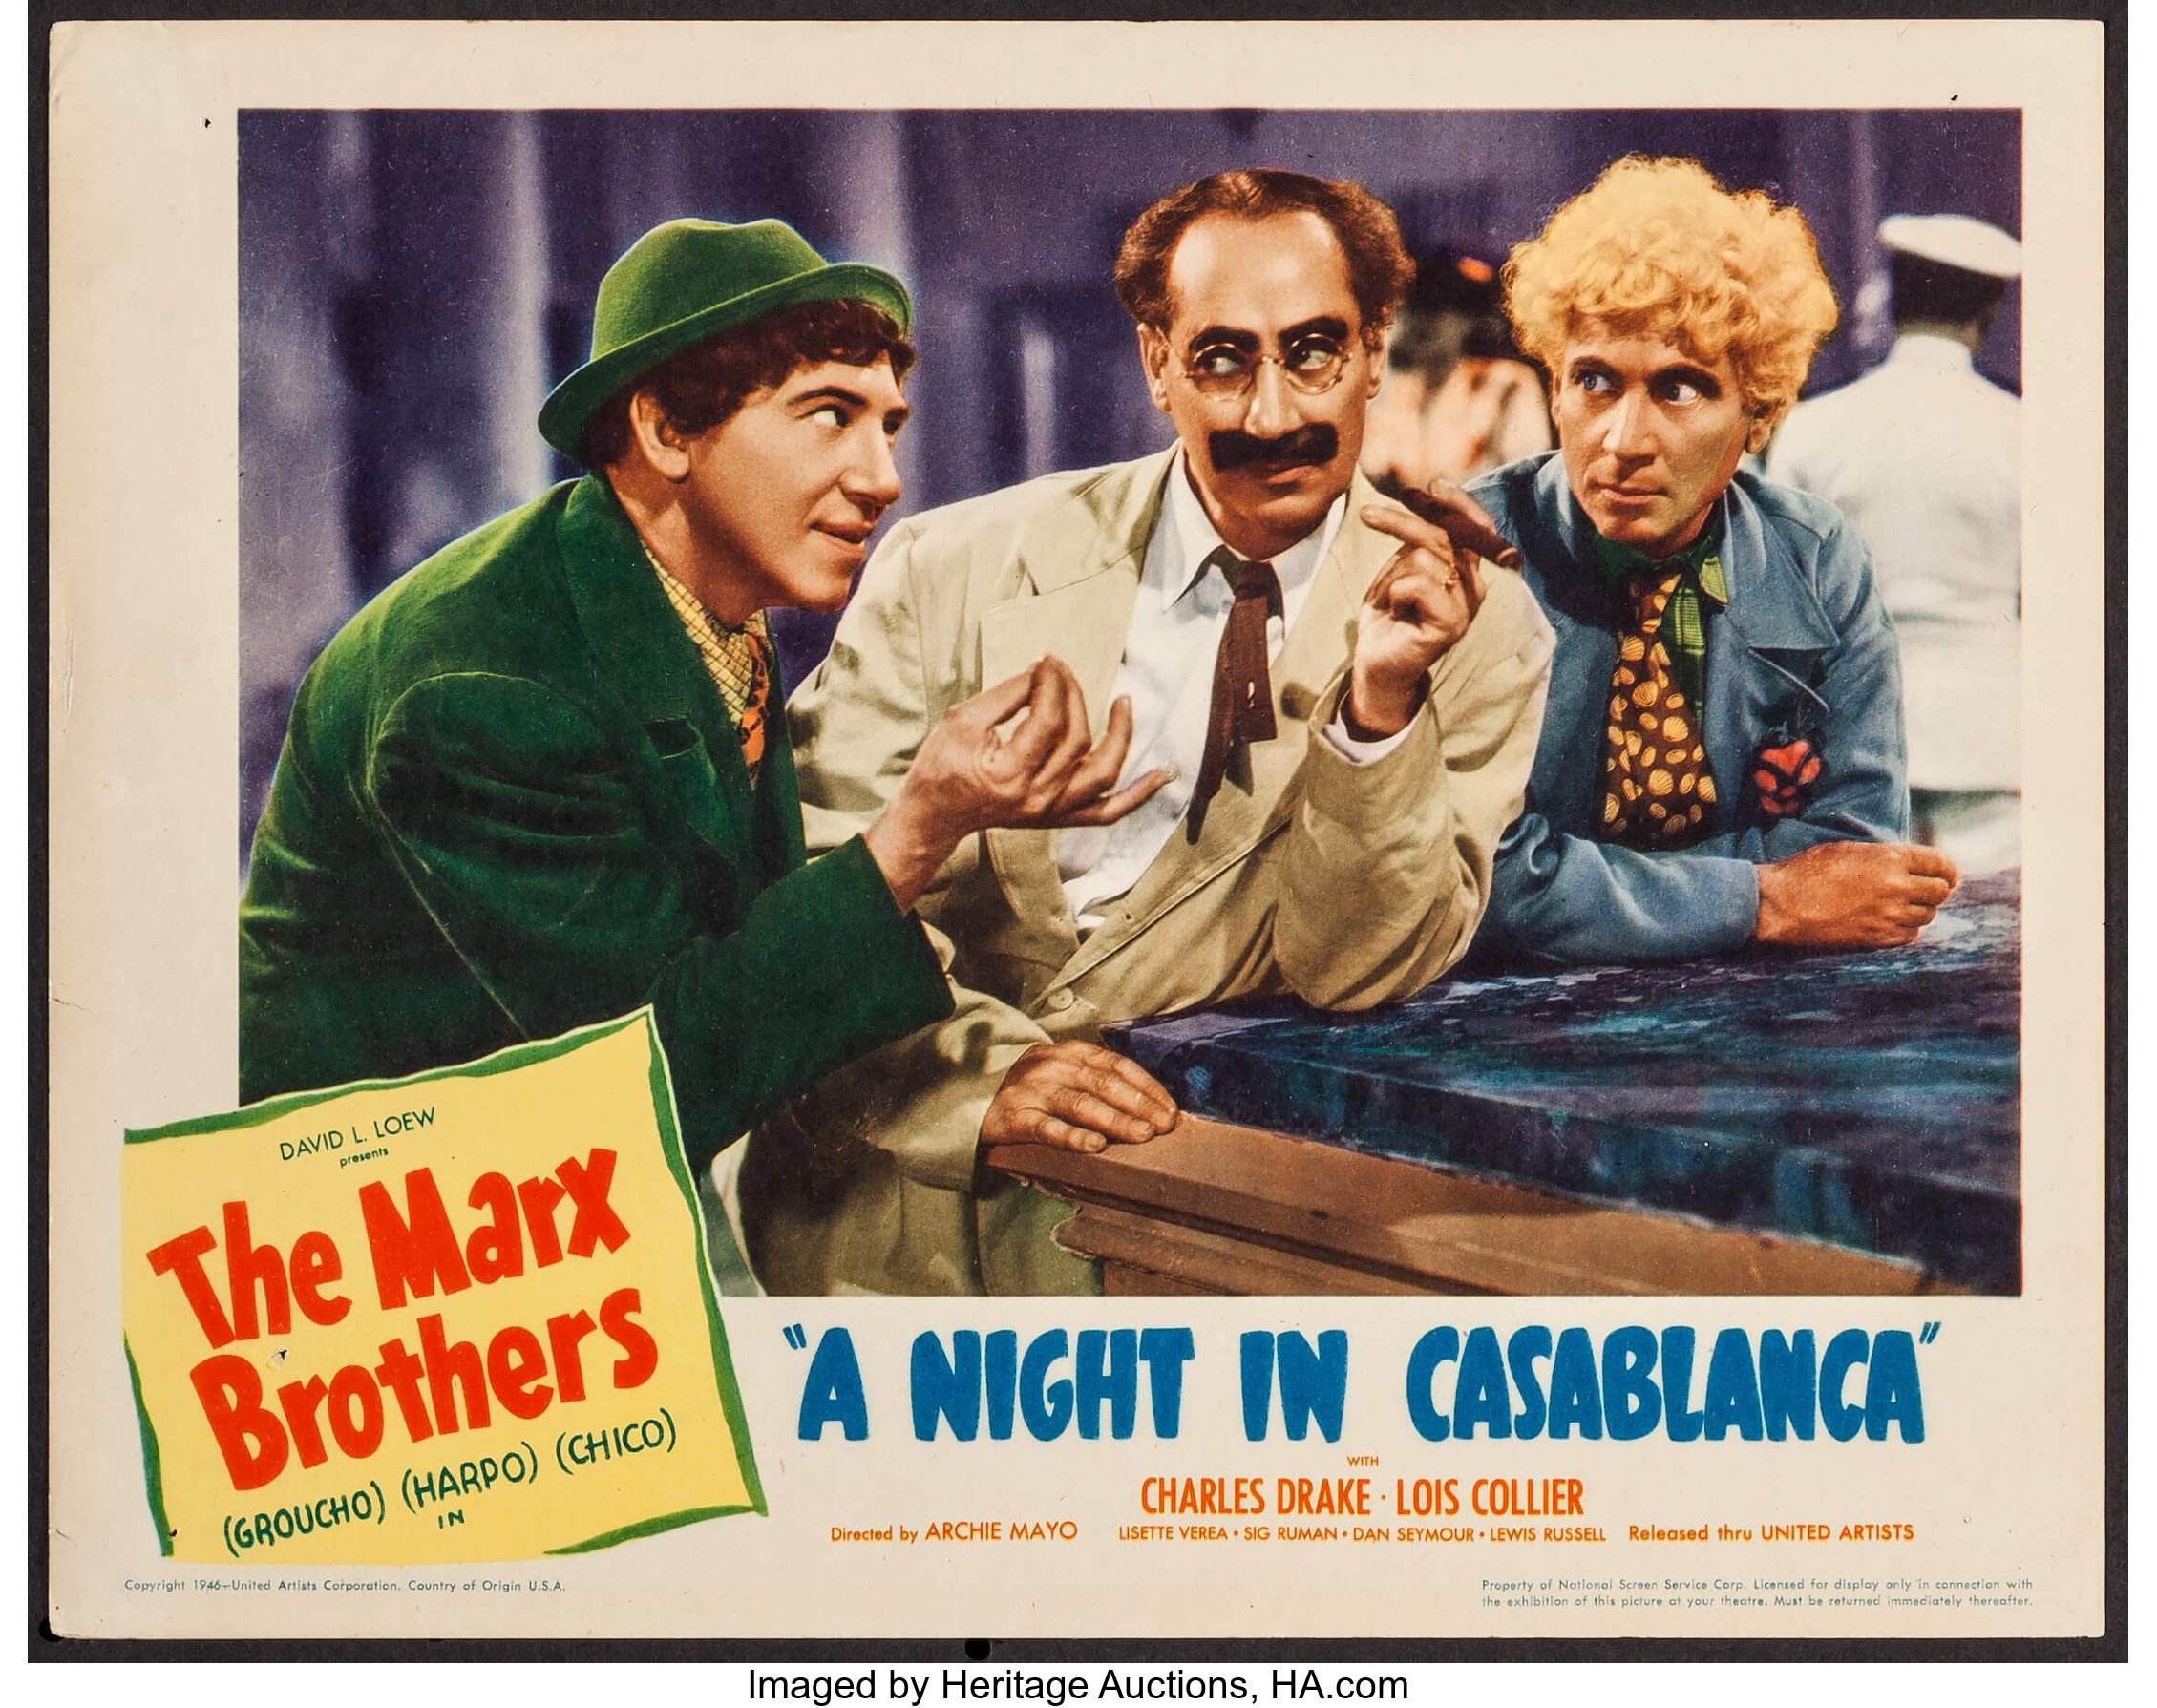 1946-A Night in Casablanca-poster.jpg